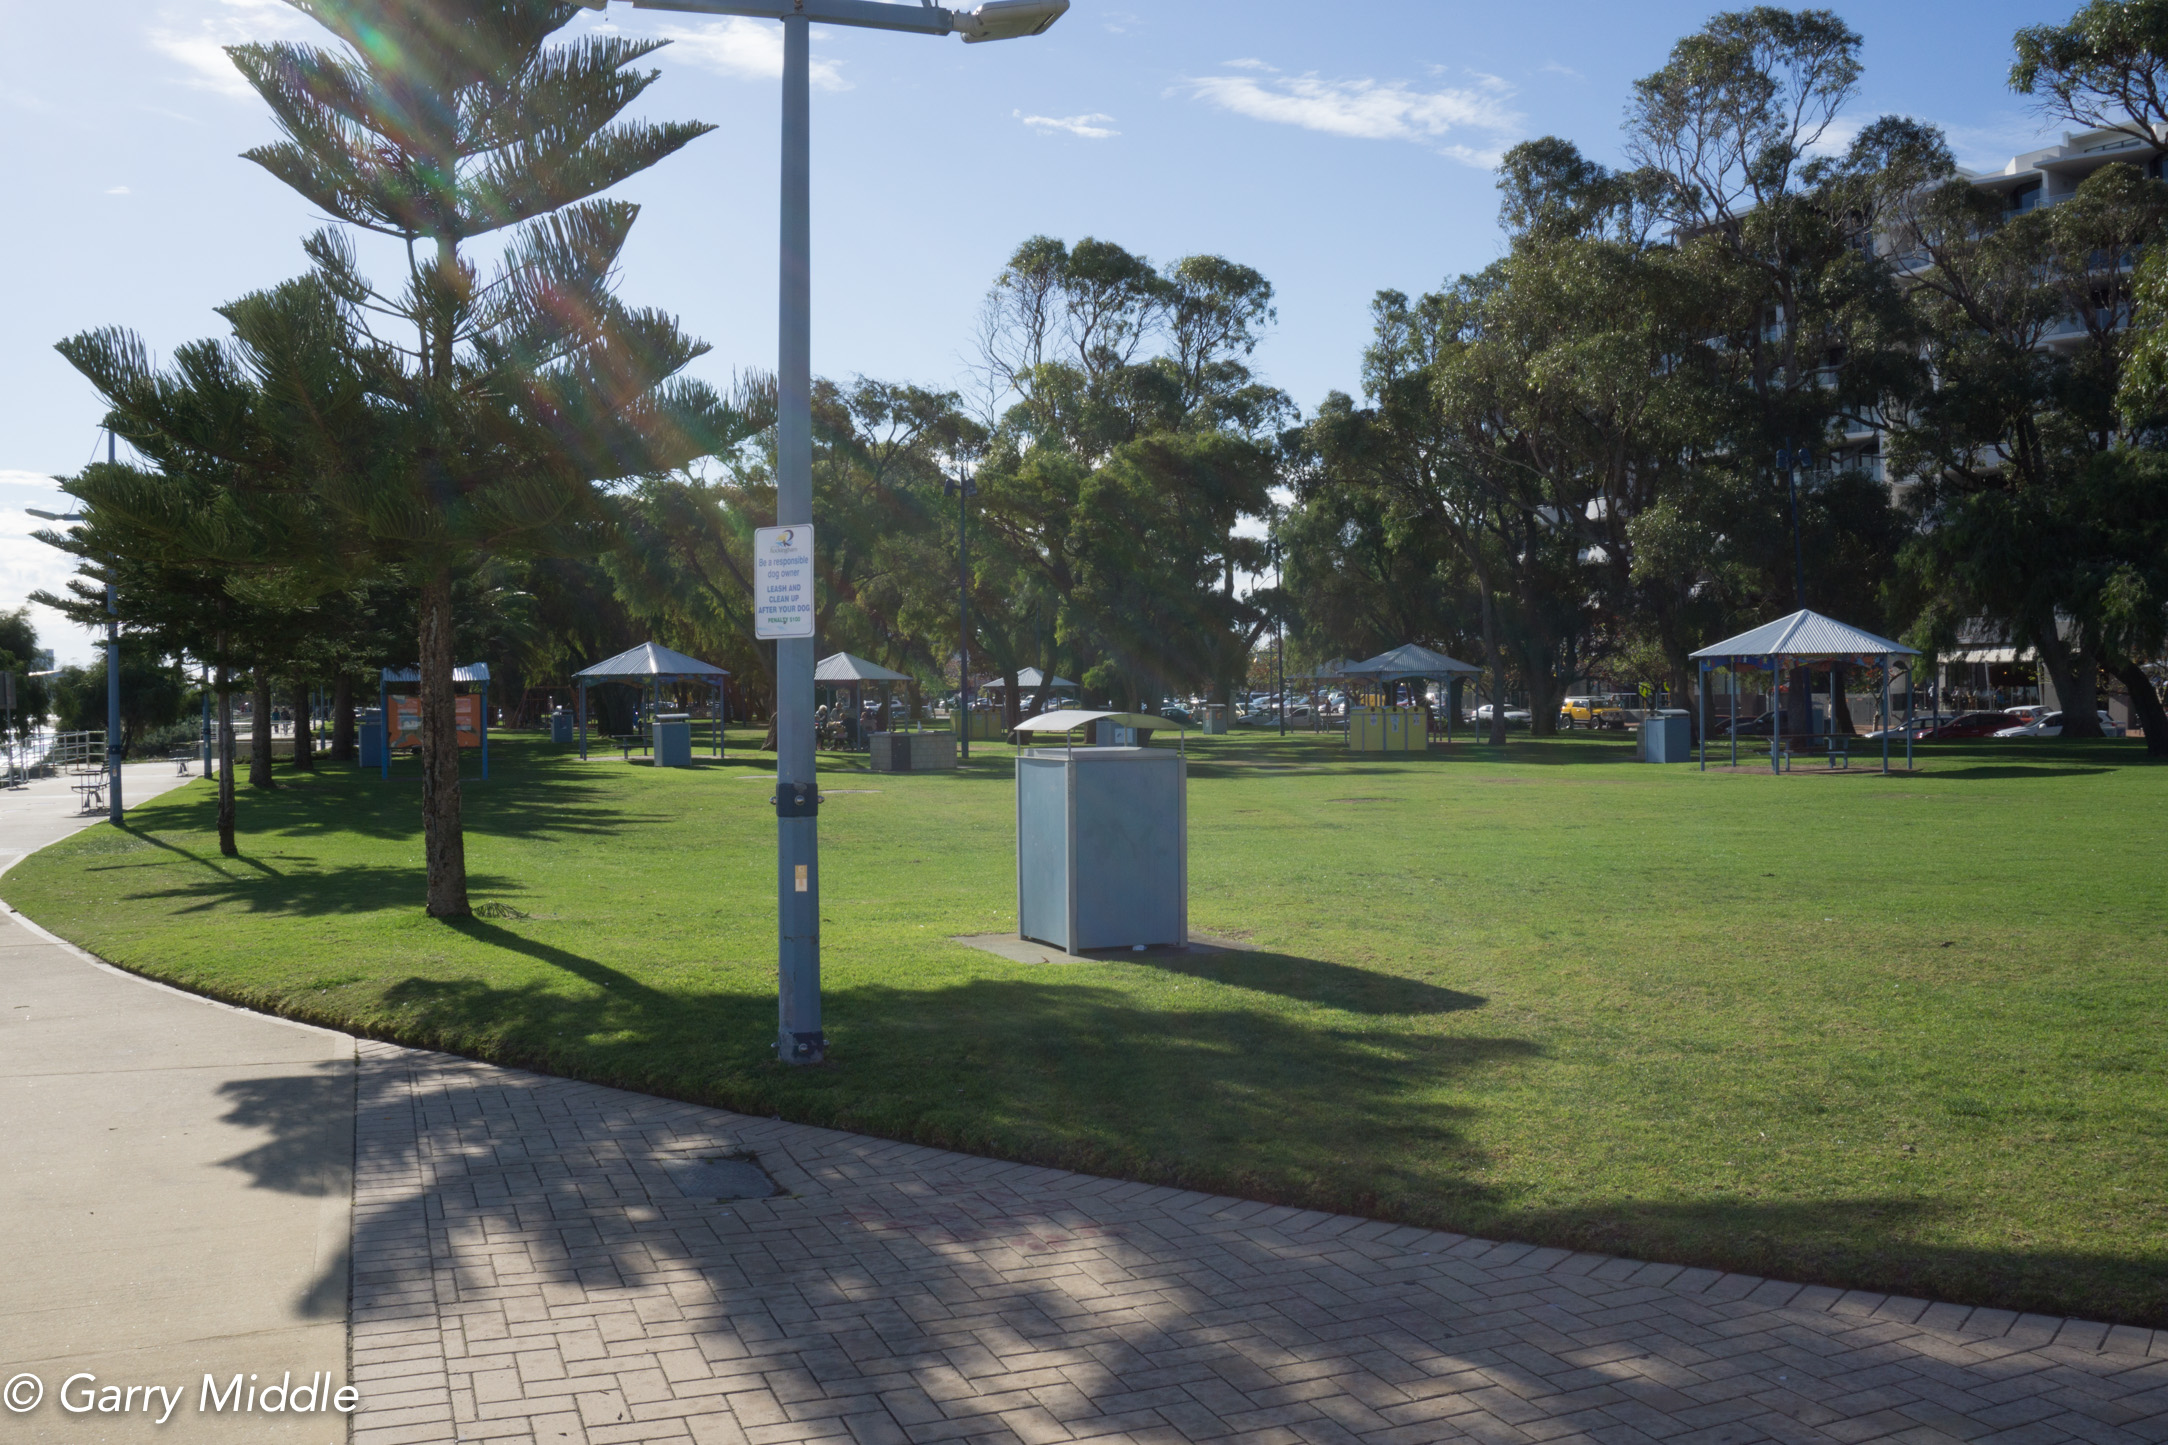 Plate 3: A popular grassed area adjacent to the walking path.